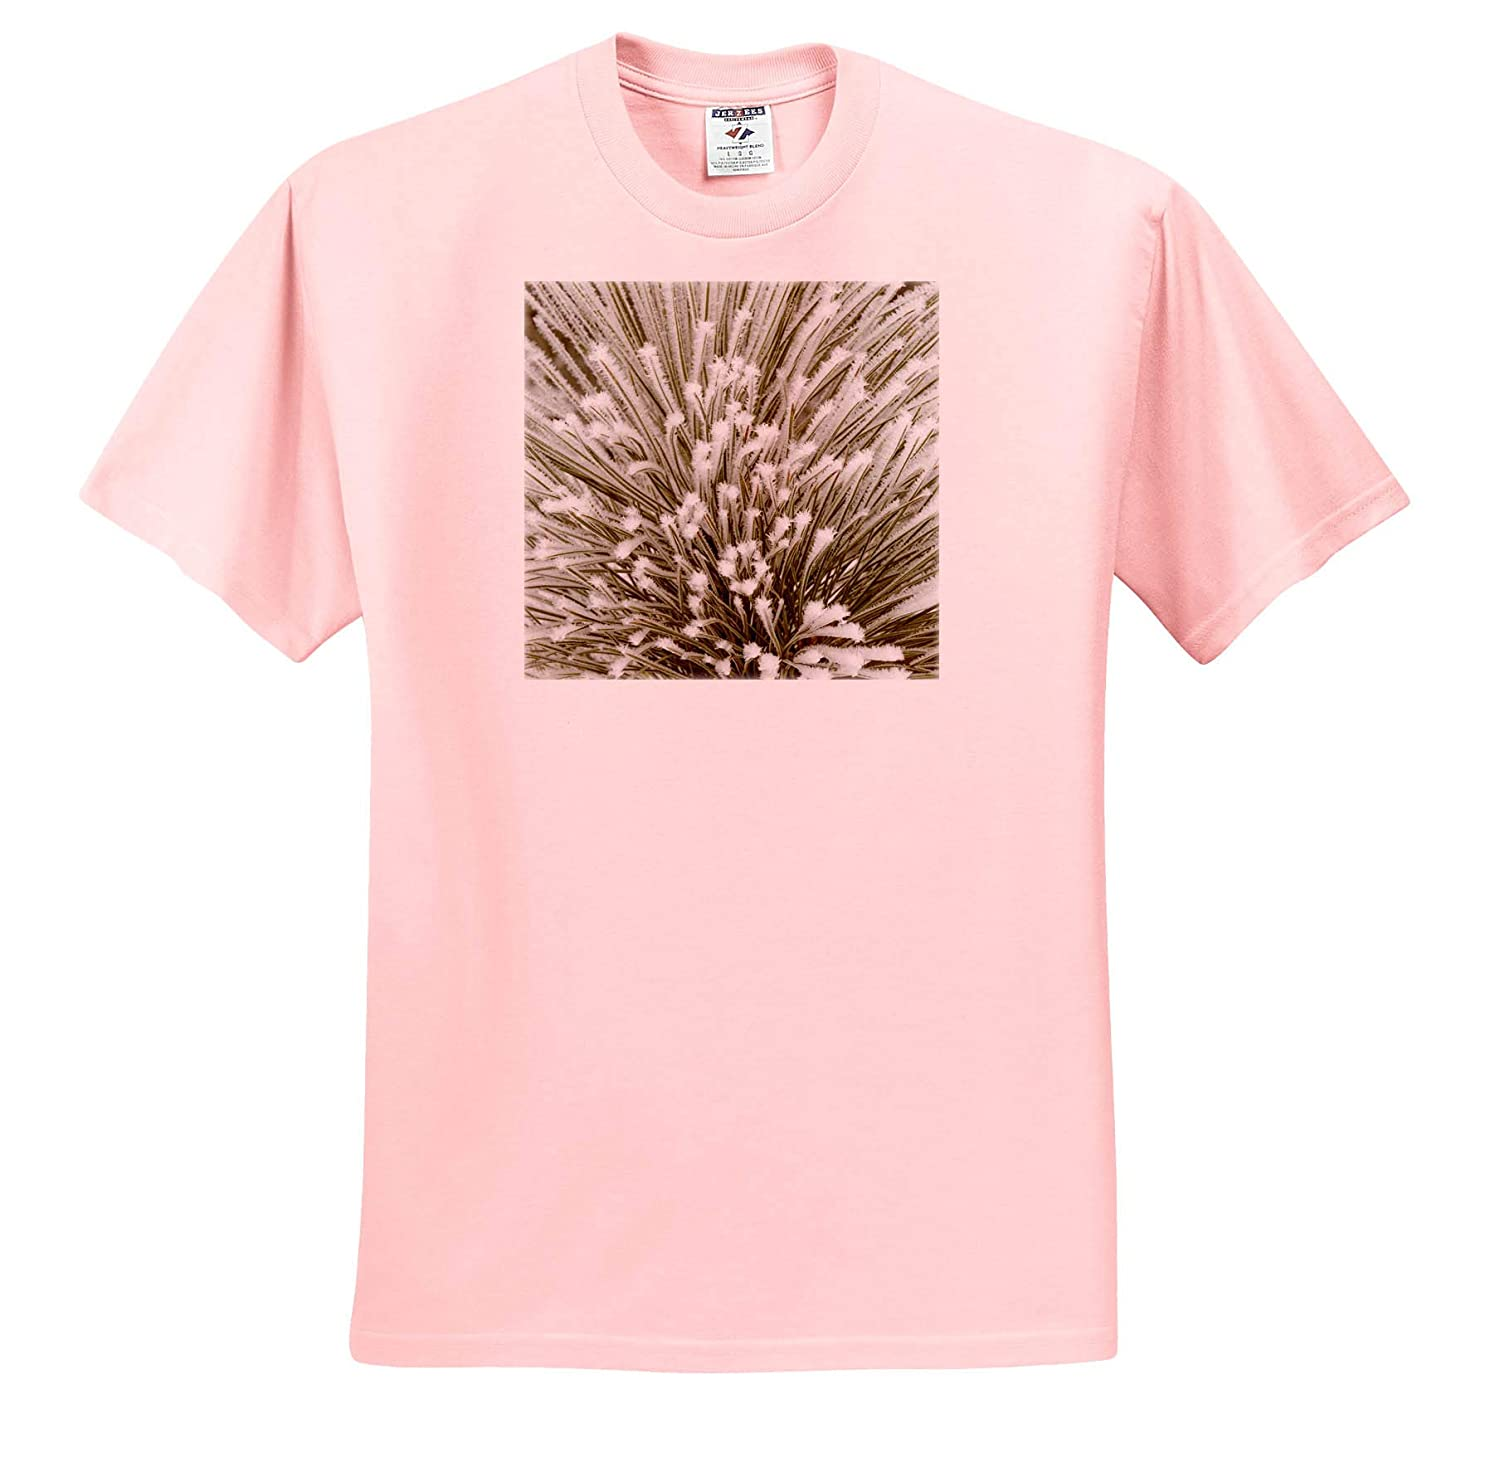 Pine Bough with Heavy Frost Crystals Winter Adult T-Shirt XL ts/_314907 3dRose Danita Delimont Montana Kalispell